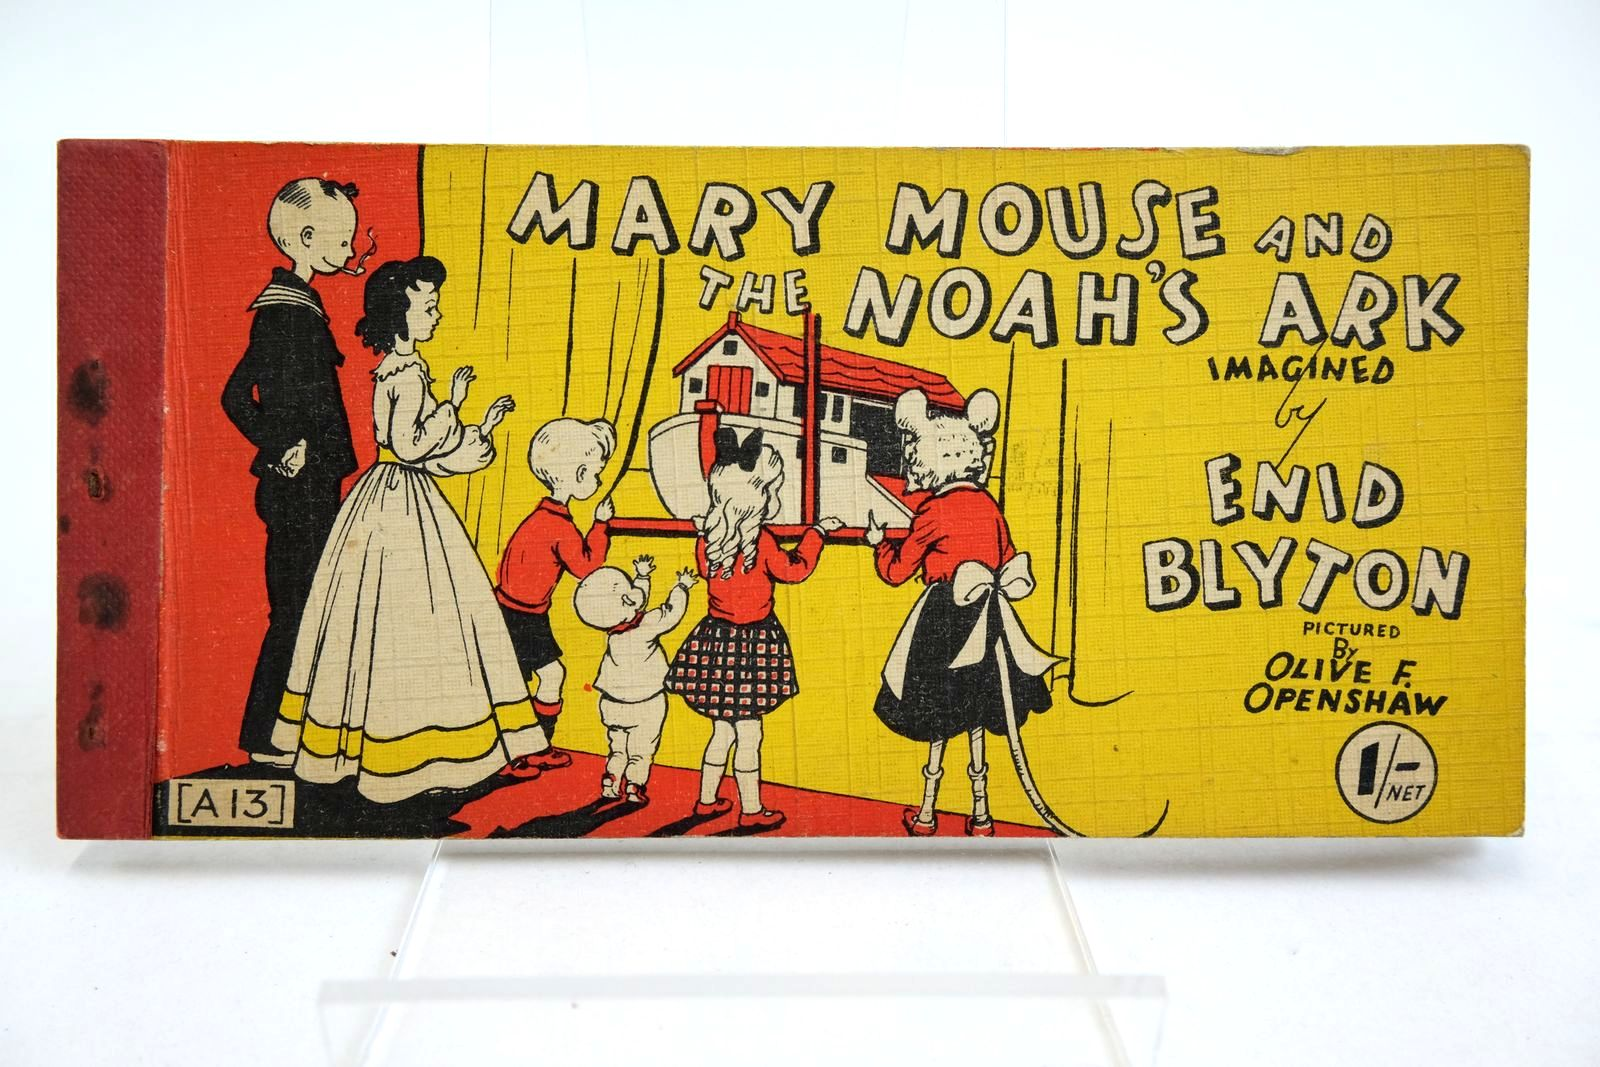 Photo of MARY MOUSE AND THE NOAH'S ARK written by Blyton, Enid illustrated by Openshaw, Olive F. published by Brockhampton Press Ltd. (STOCK CODE: 2134969)  for sale by Stella & Rose's Books